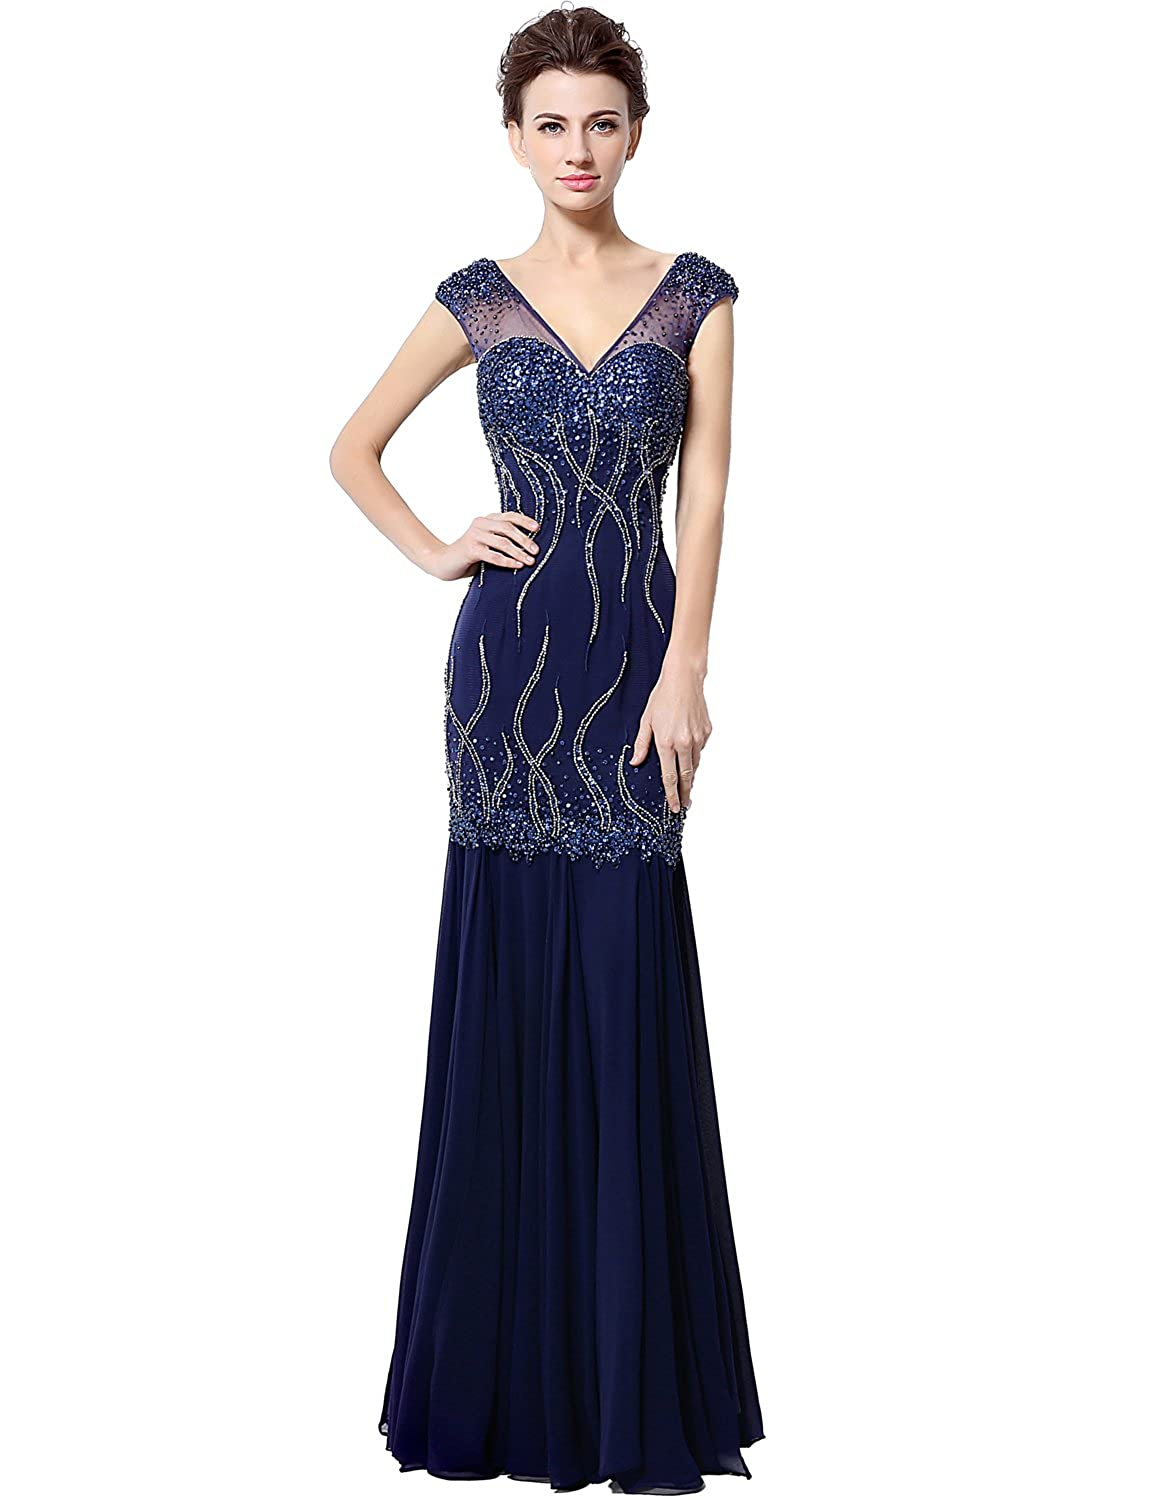 Favebridal Women's V-neck Mermaid Evening Dresses Sexy Beaded Prom Gowns LX032